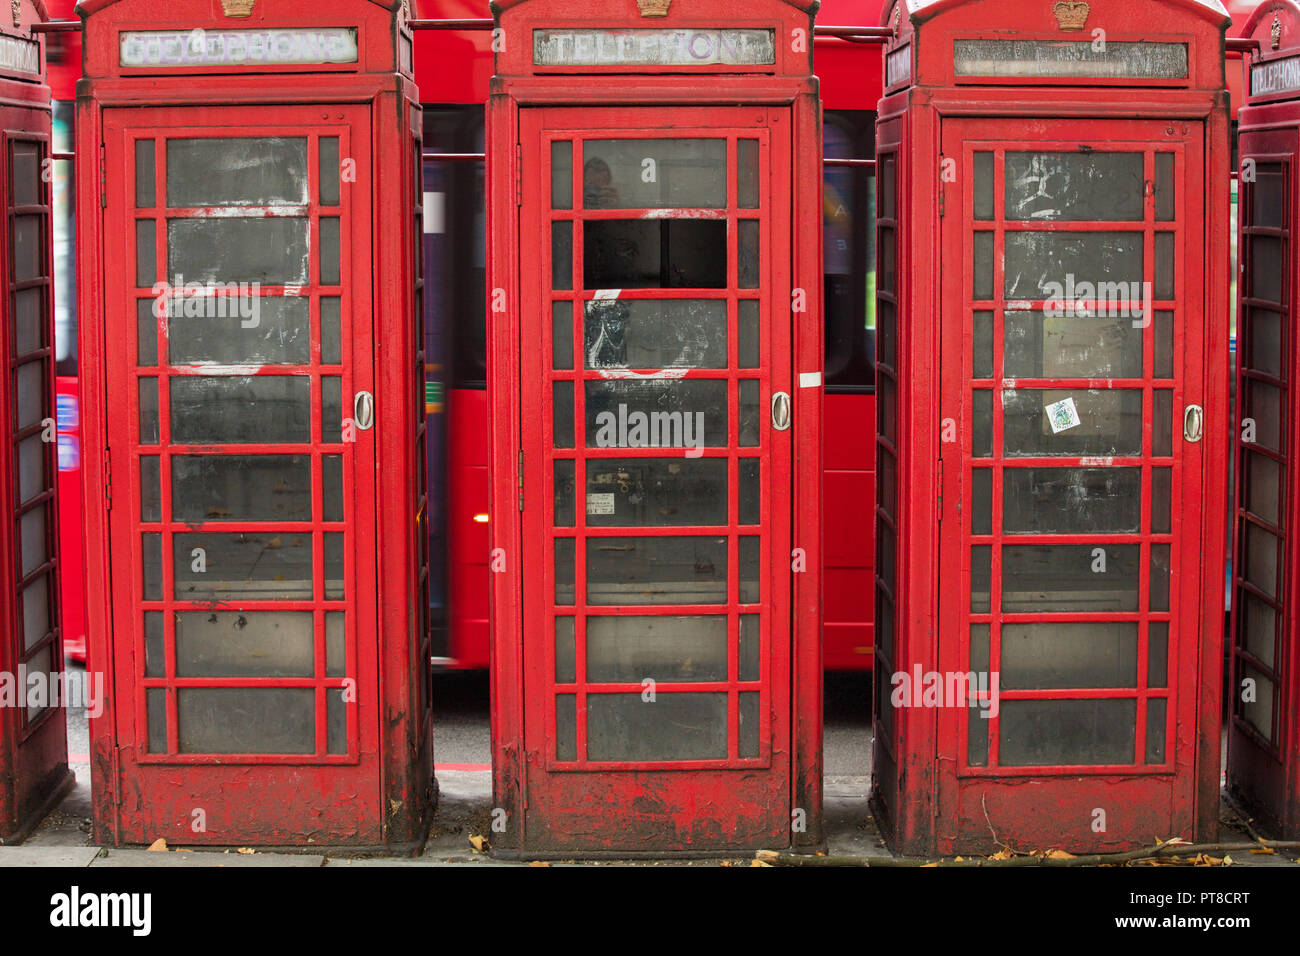 London, GB. Traditional and historical red telephone boot or boxes can still be seen in the UK. These kiosks were designed by Sir Giles Gilbert Scott. - Stock Image